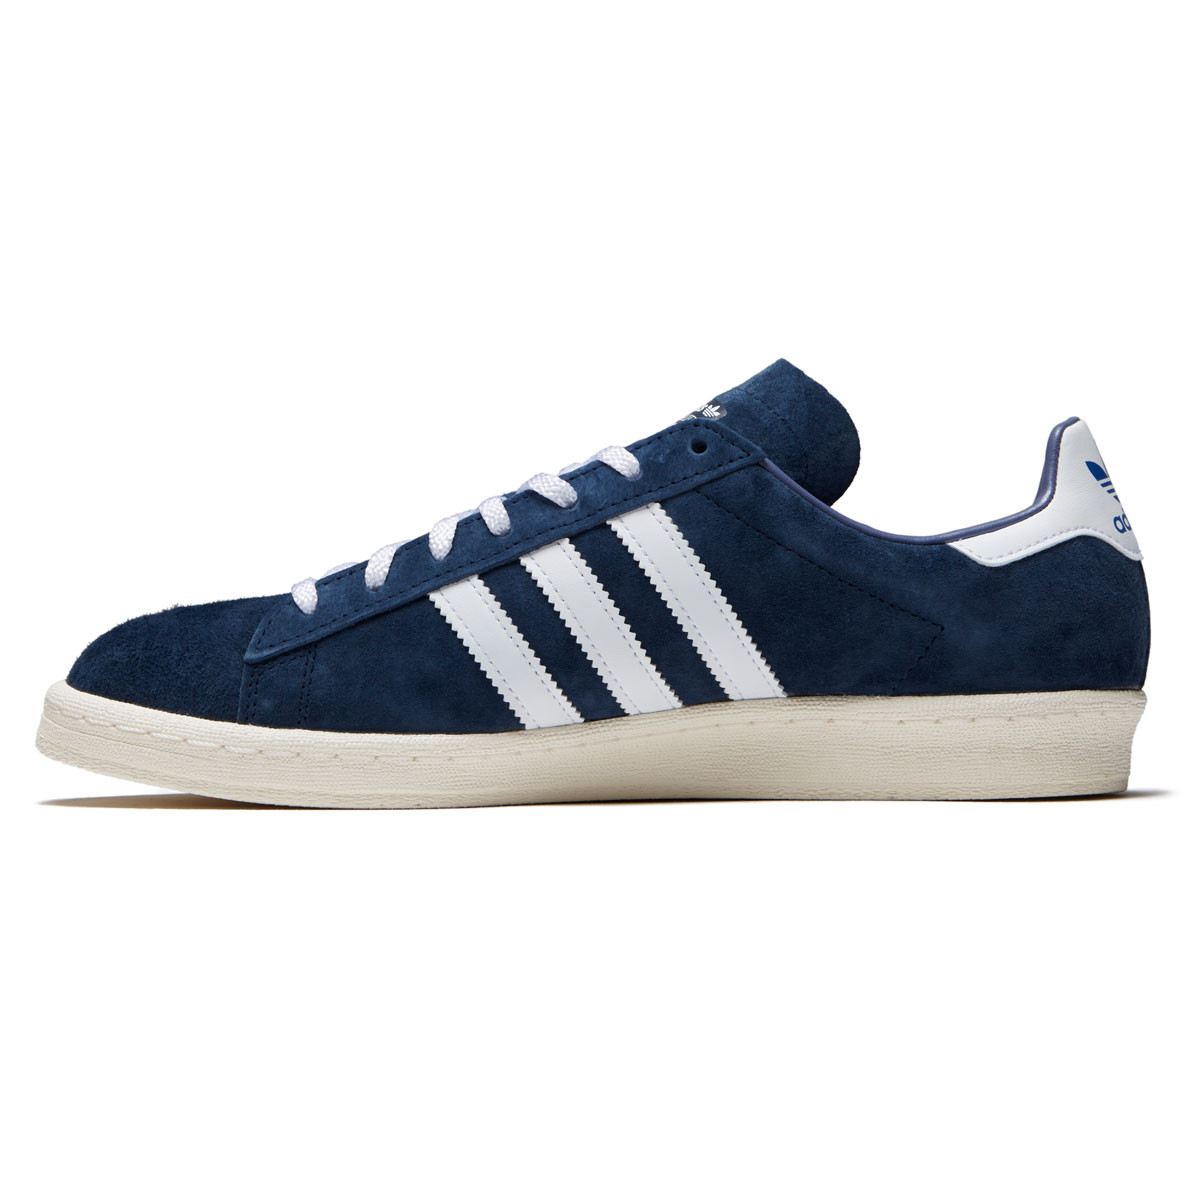 0f77a3705cb Adidas Campus 80s RYR Shoes - Collegiate Navy White Chalk White - 13.0